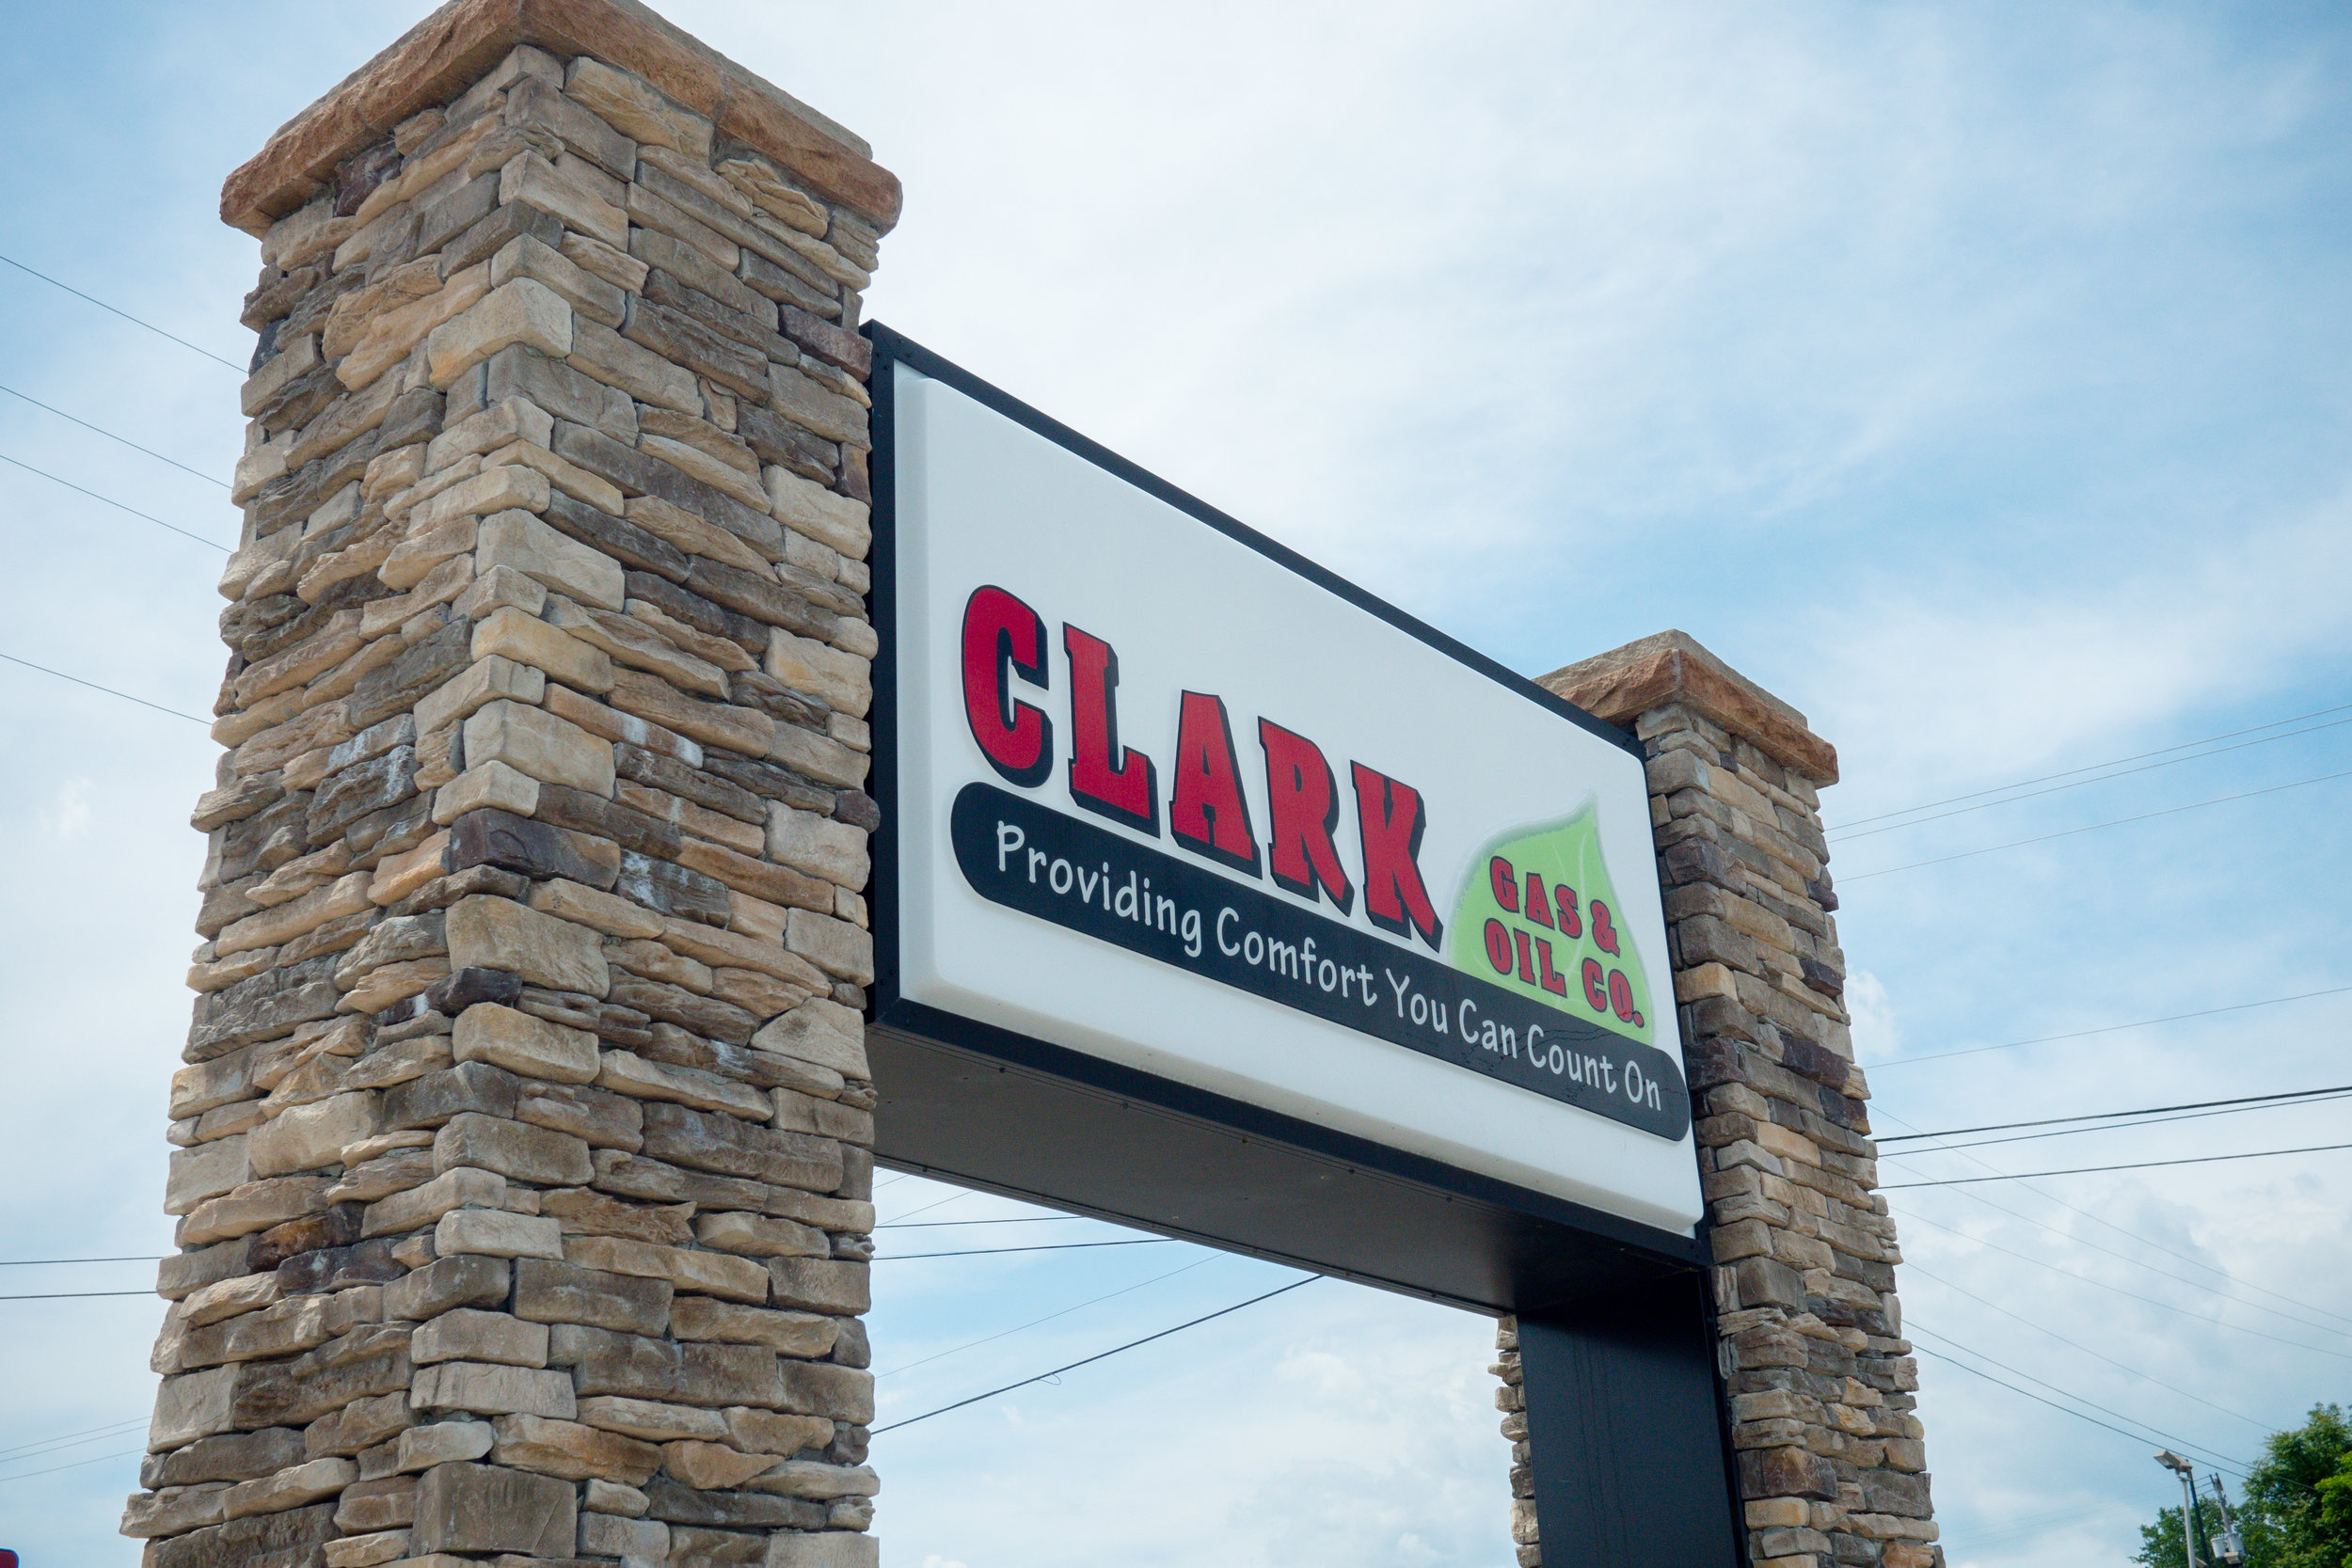 OFFICE LOCATIONS - Clark Gas & Oil has three convenient office locations in Stuart, Floyd and Hillsville, VA. Stop by any location Monday through Friday between 8 am and 5 pm for assistance.We can also be reached TOLL-FREE at